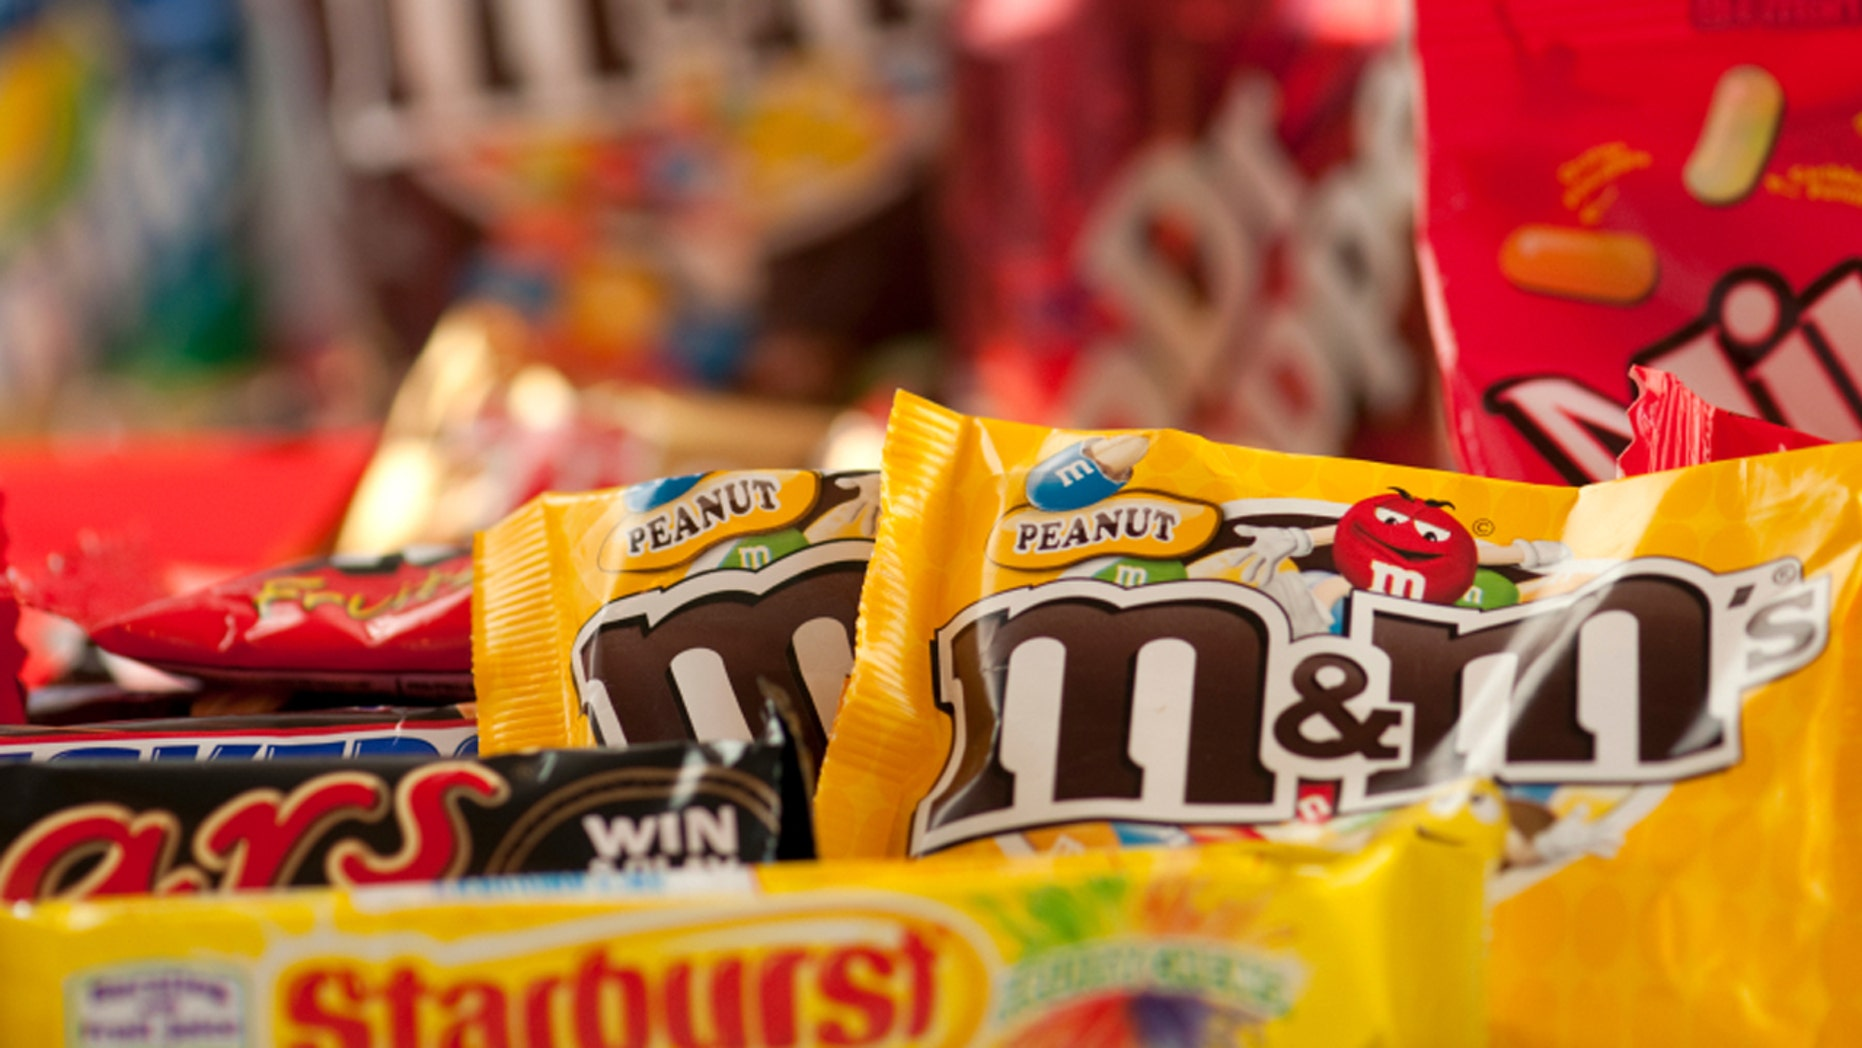 Americans shell out billions on Halloween candy each year.